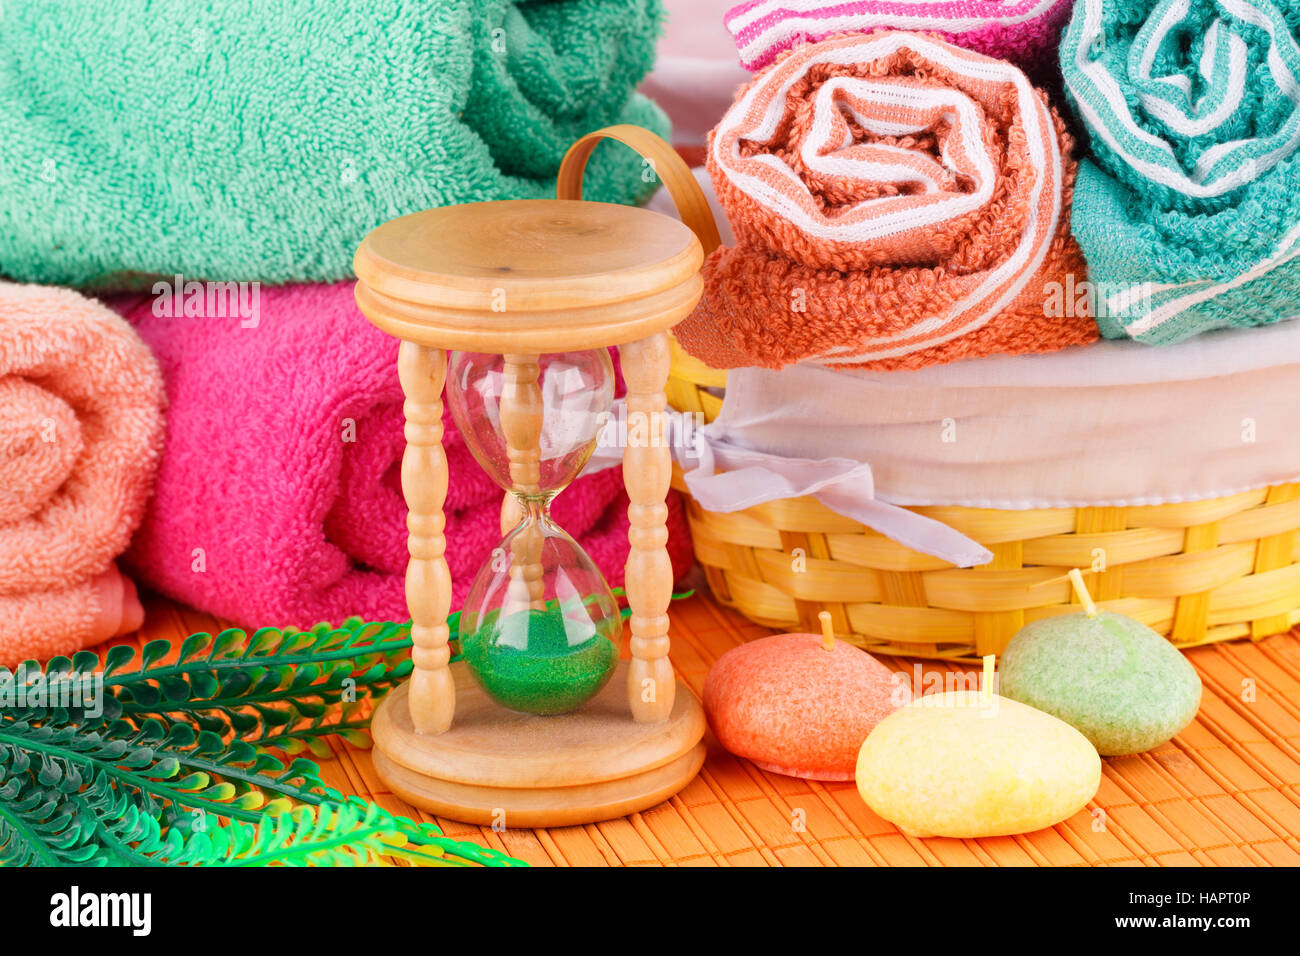 Spa set with colorful towels, candles and sand glass on bamboo background. Stock Photo